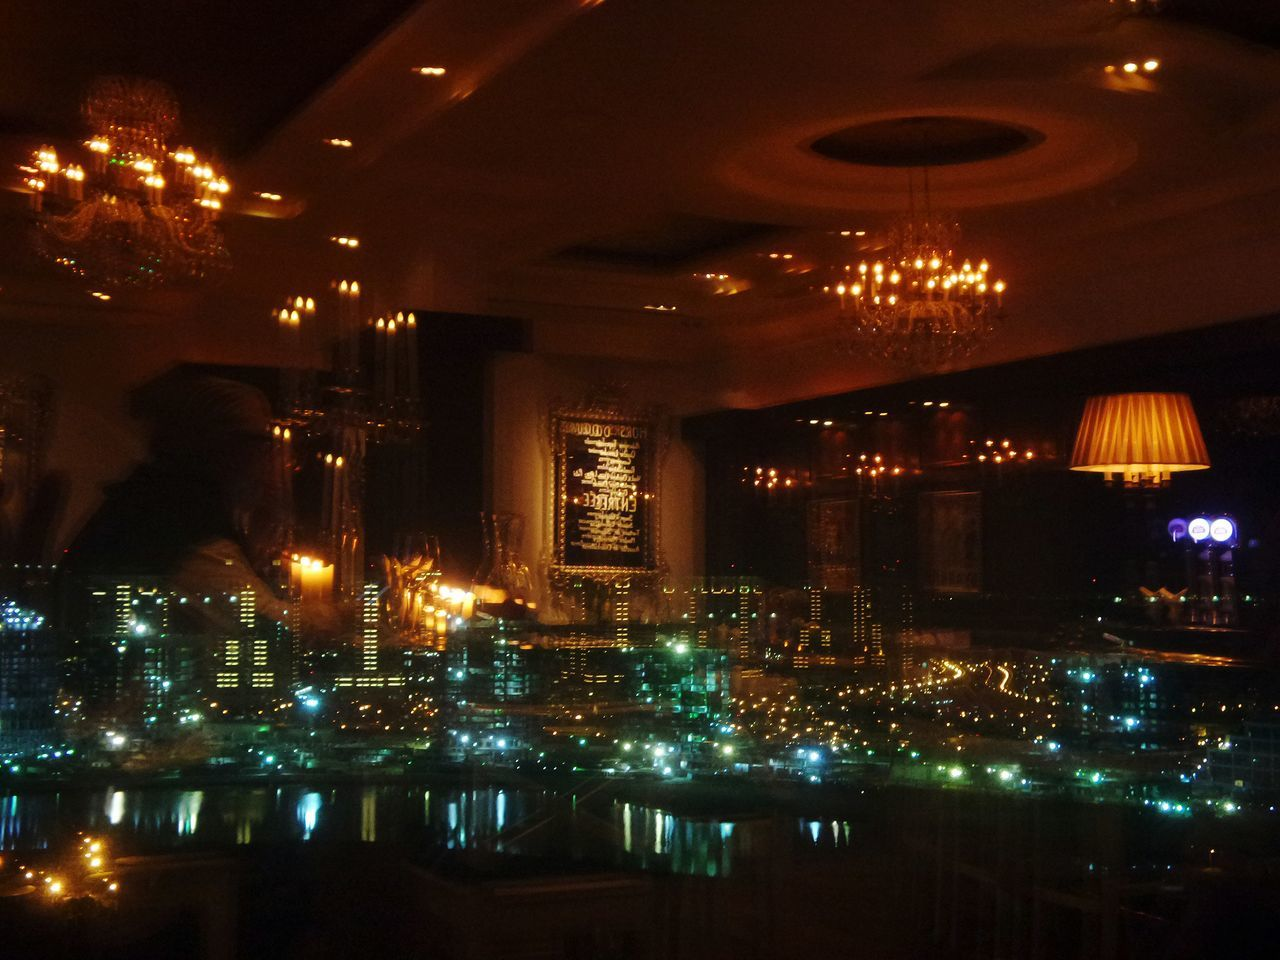 On the 23rd floor of a very nice hotel, I found this romantic French restaurant. I love the table close to the windows Embrace Urban Life Night Illuminated Indoors  Sky Skyscraper Glass Reflections Restaurant Restaurant Window Restaurant With Views